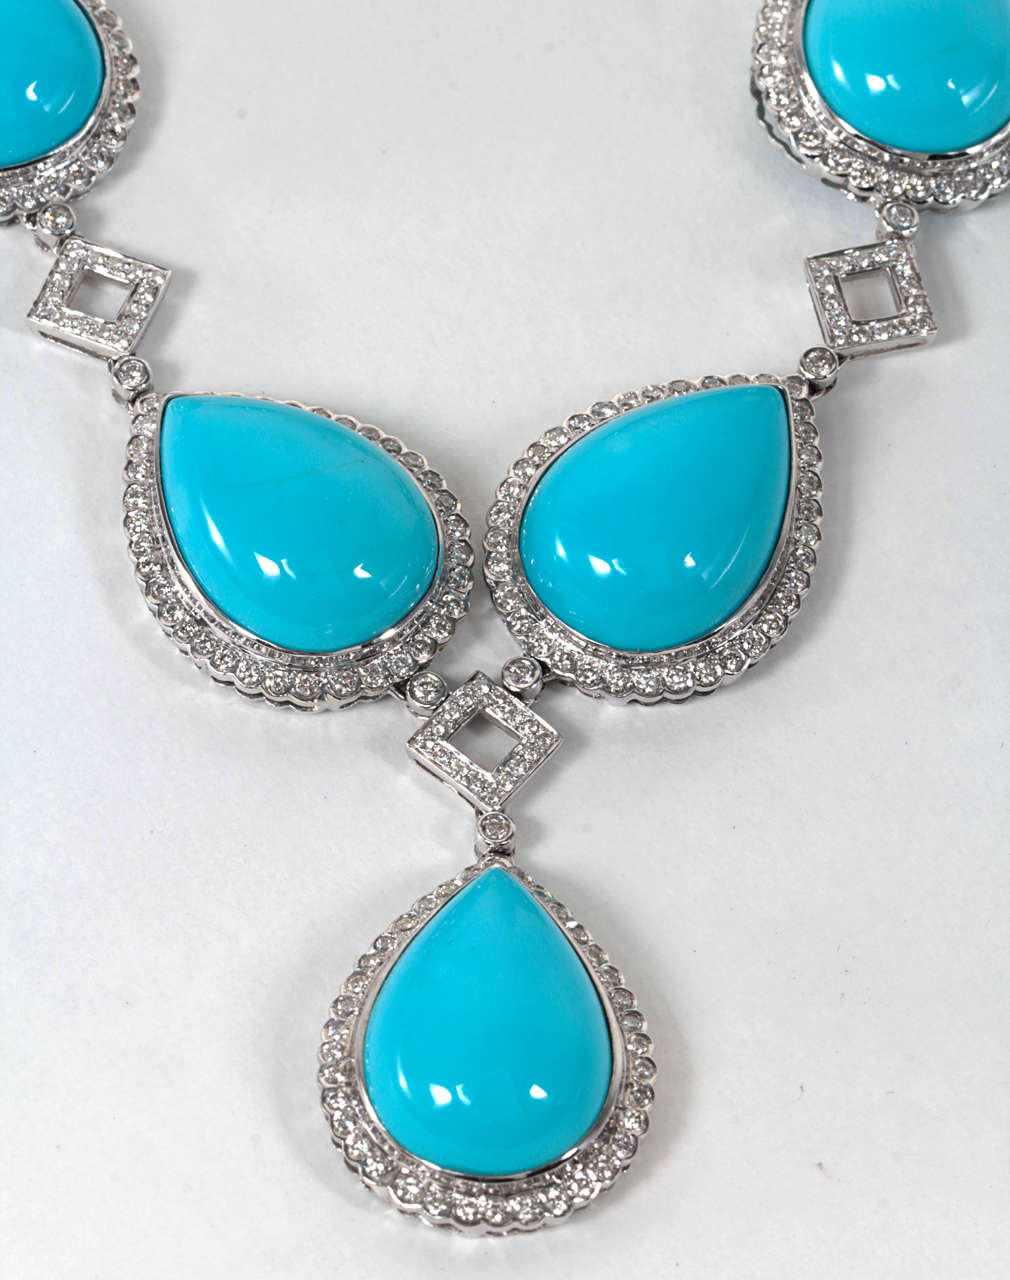 Turquoise and Diamond Necklace and Earring Set 6